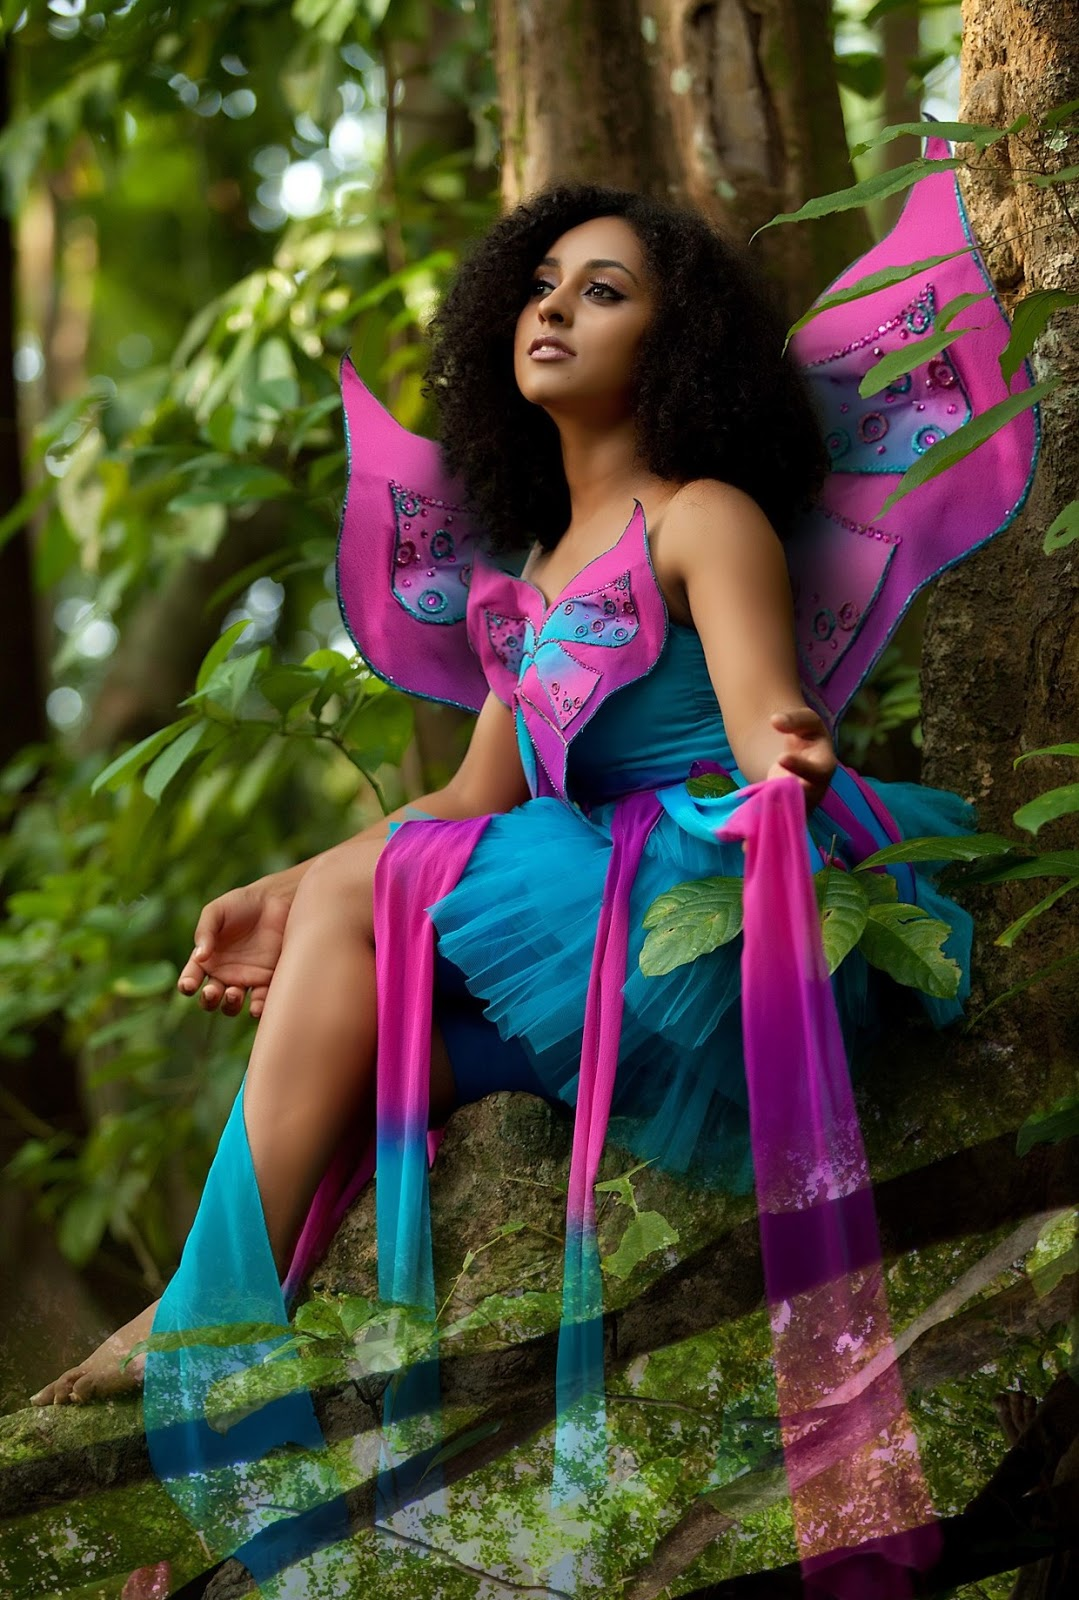 D2 Anchor Pearle Maaney Bold And Beautiful Hd Wallpapers